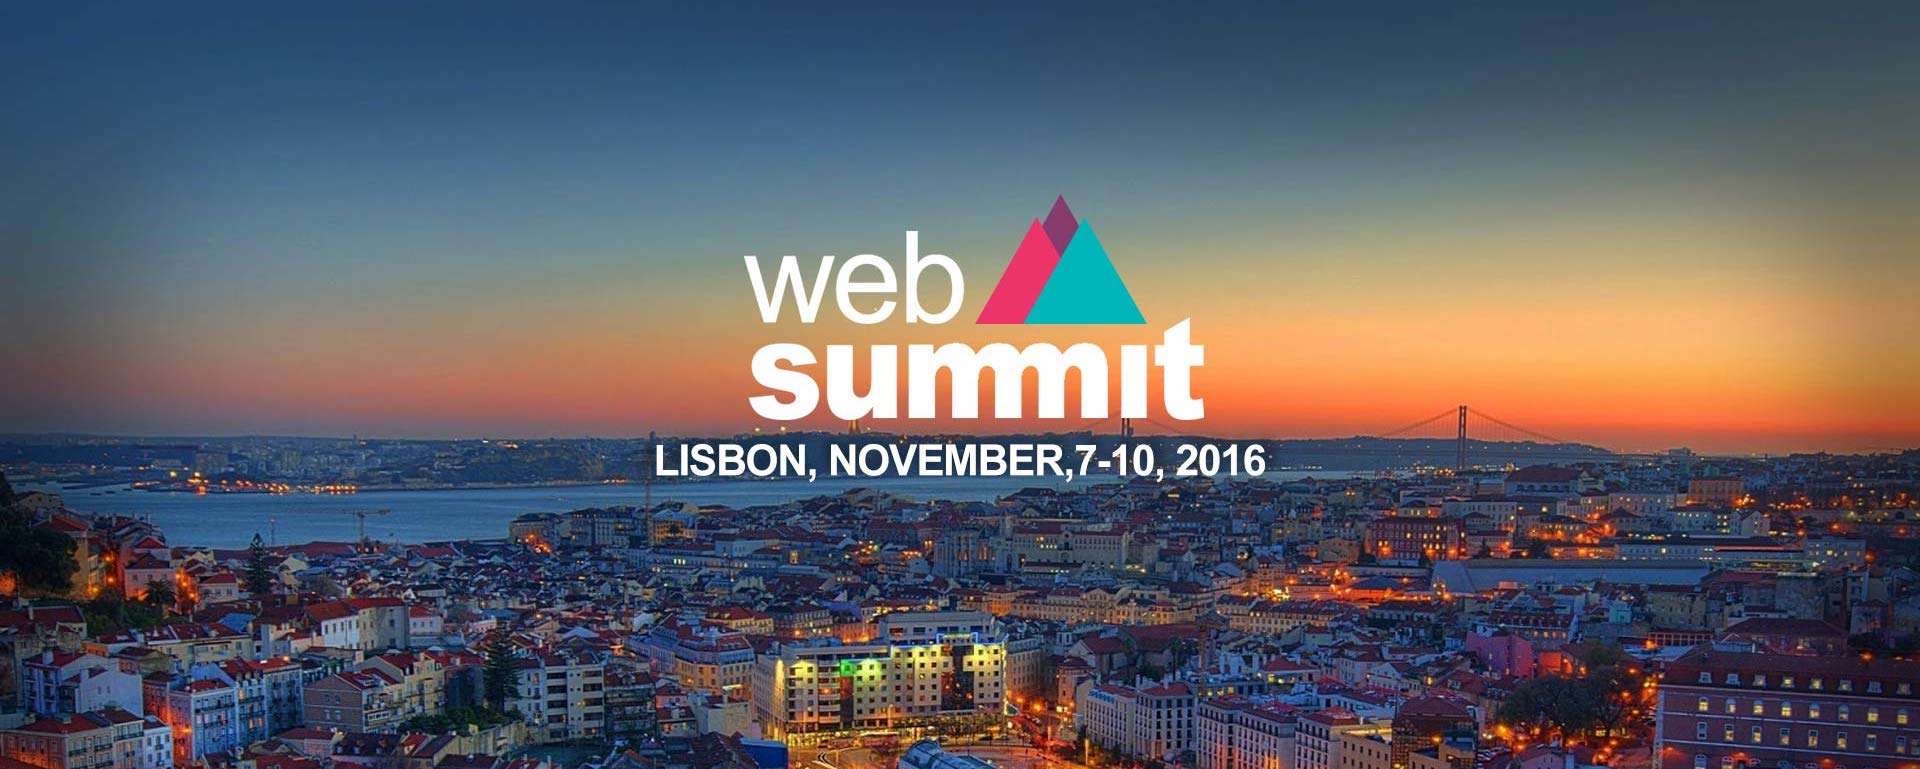 Dunforce wins La Poste's competition to attend Web Summit 2016